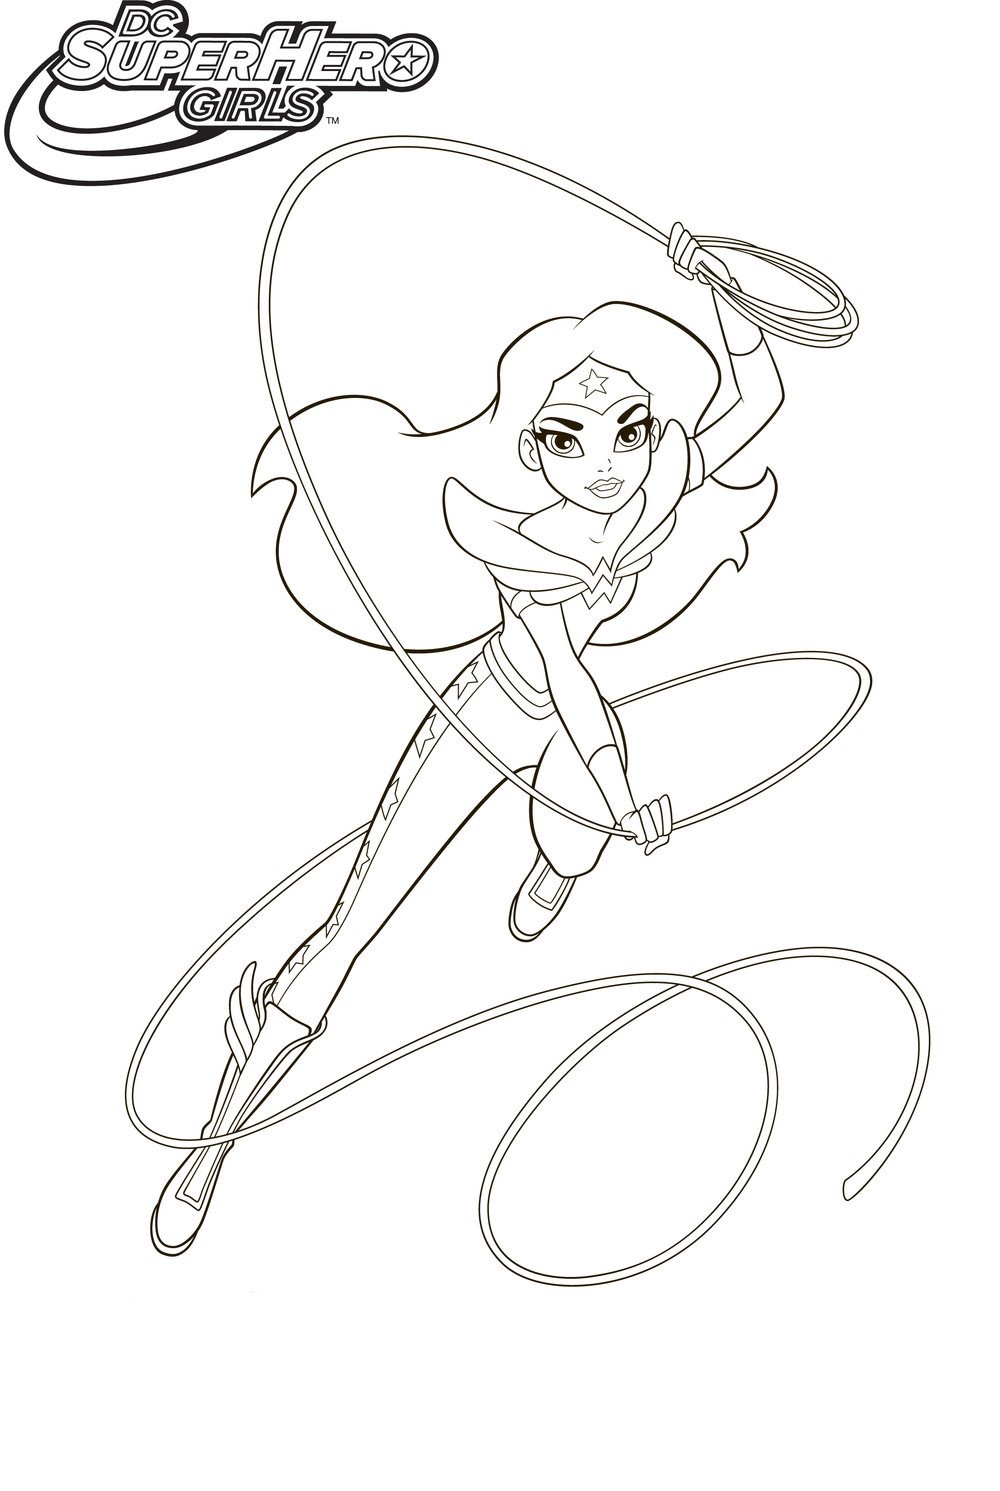 DC Superhero Girls Coloring Pages - Best Coloring Pages ...